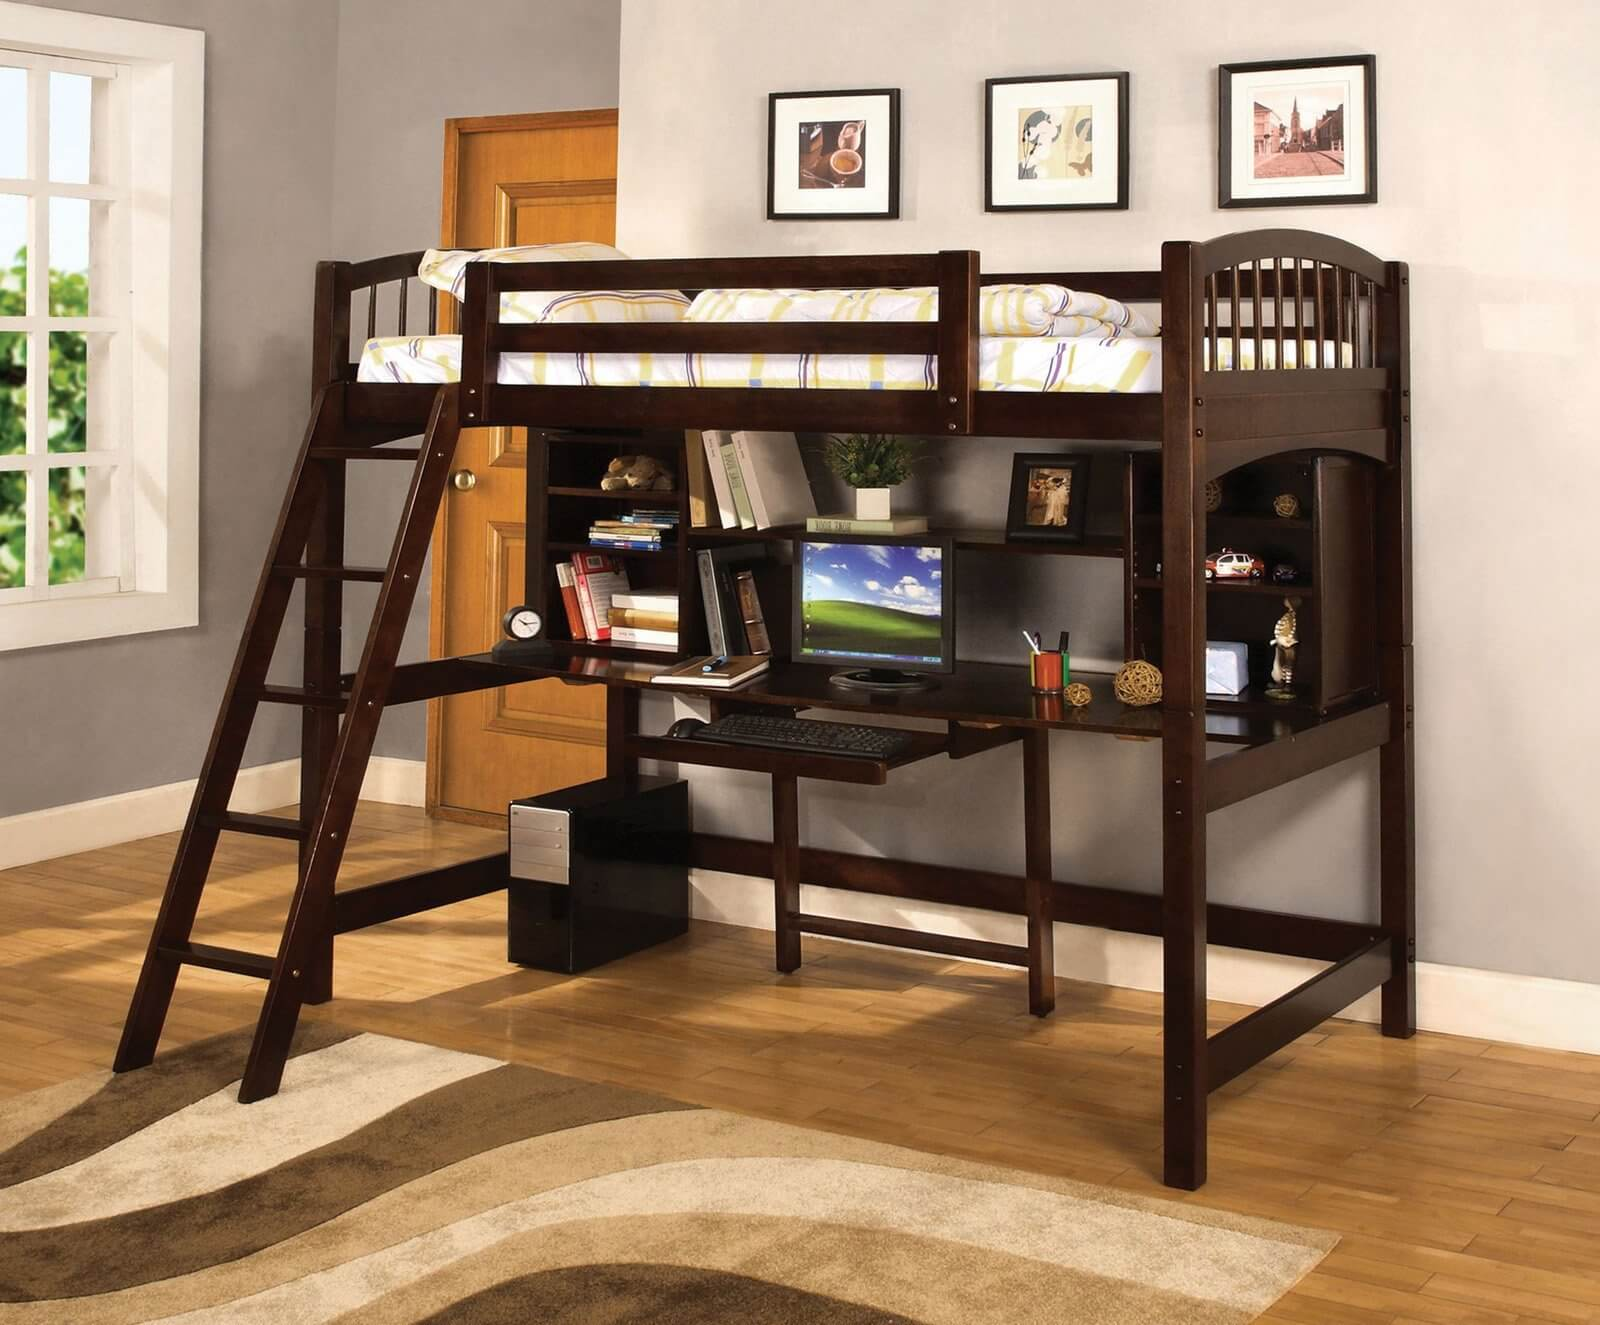 Here's another bed with rich dark stained wood construction. The desk component is fully equipped with shelving and a slide-out keyboard drawer, providing anything a child could need for work or play.